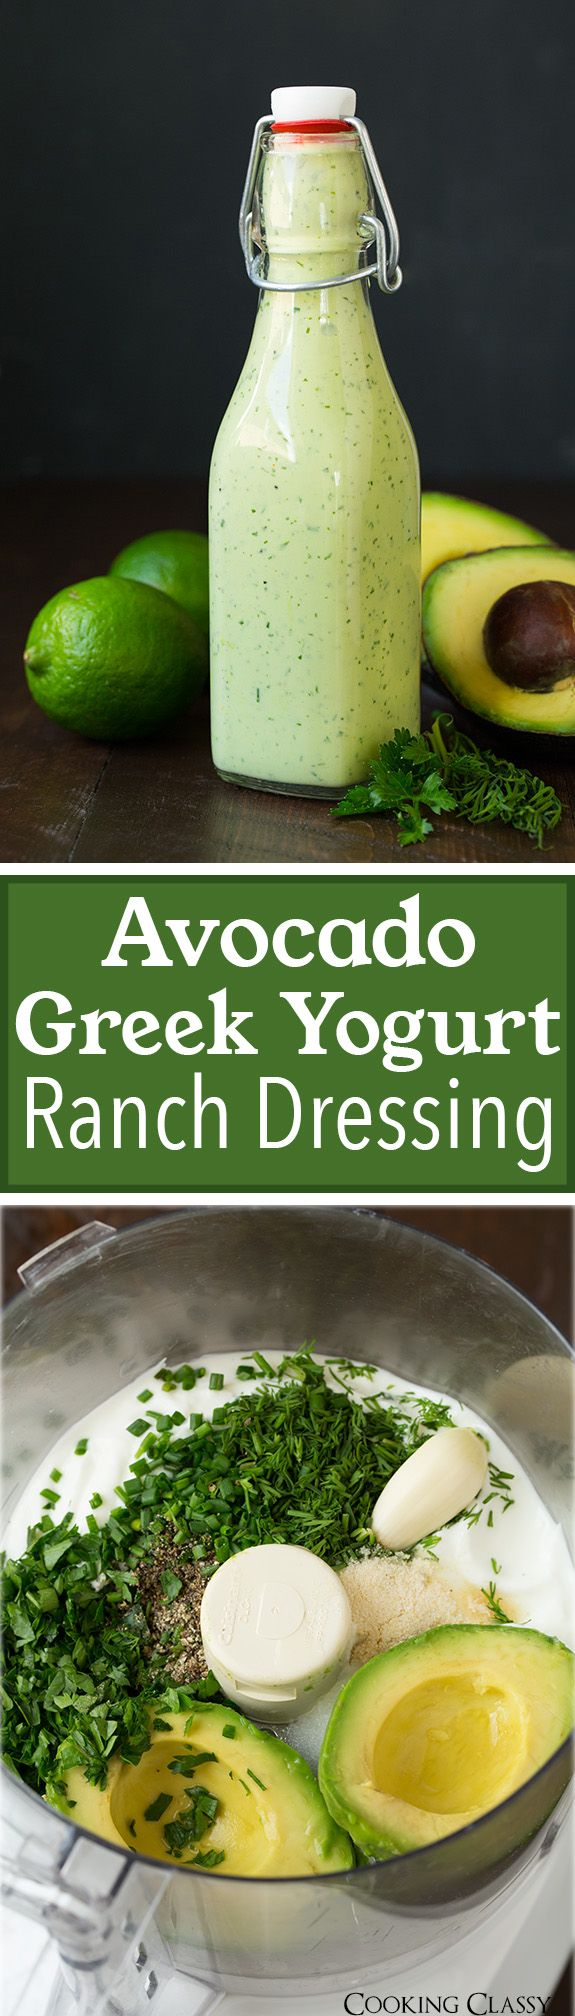 shop atlanta boutiques online Avocado Greek Yogurt Ranch Dressing   easy  made from scratch and so delicious   Can be used as a veggie dip too  just omit the milk